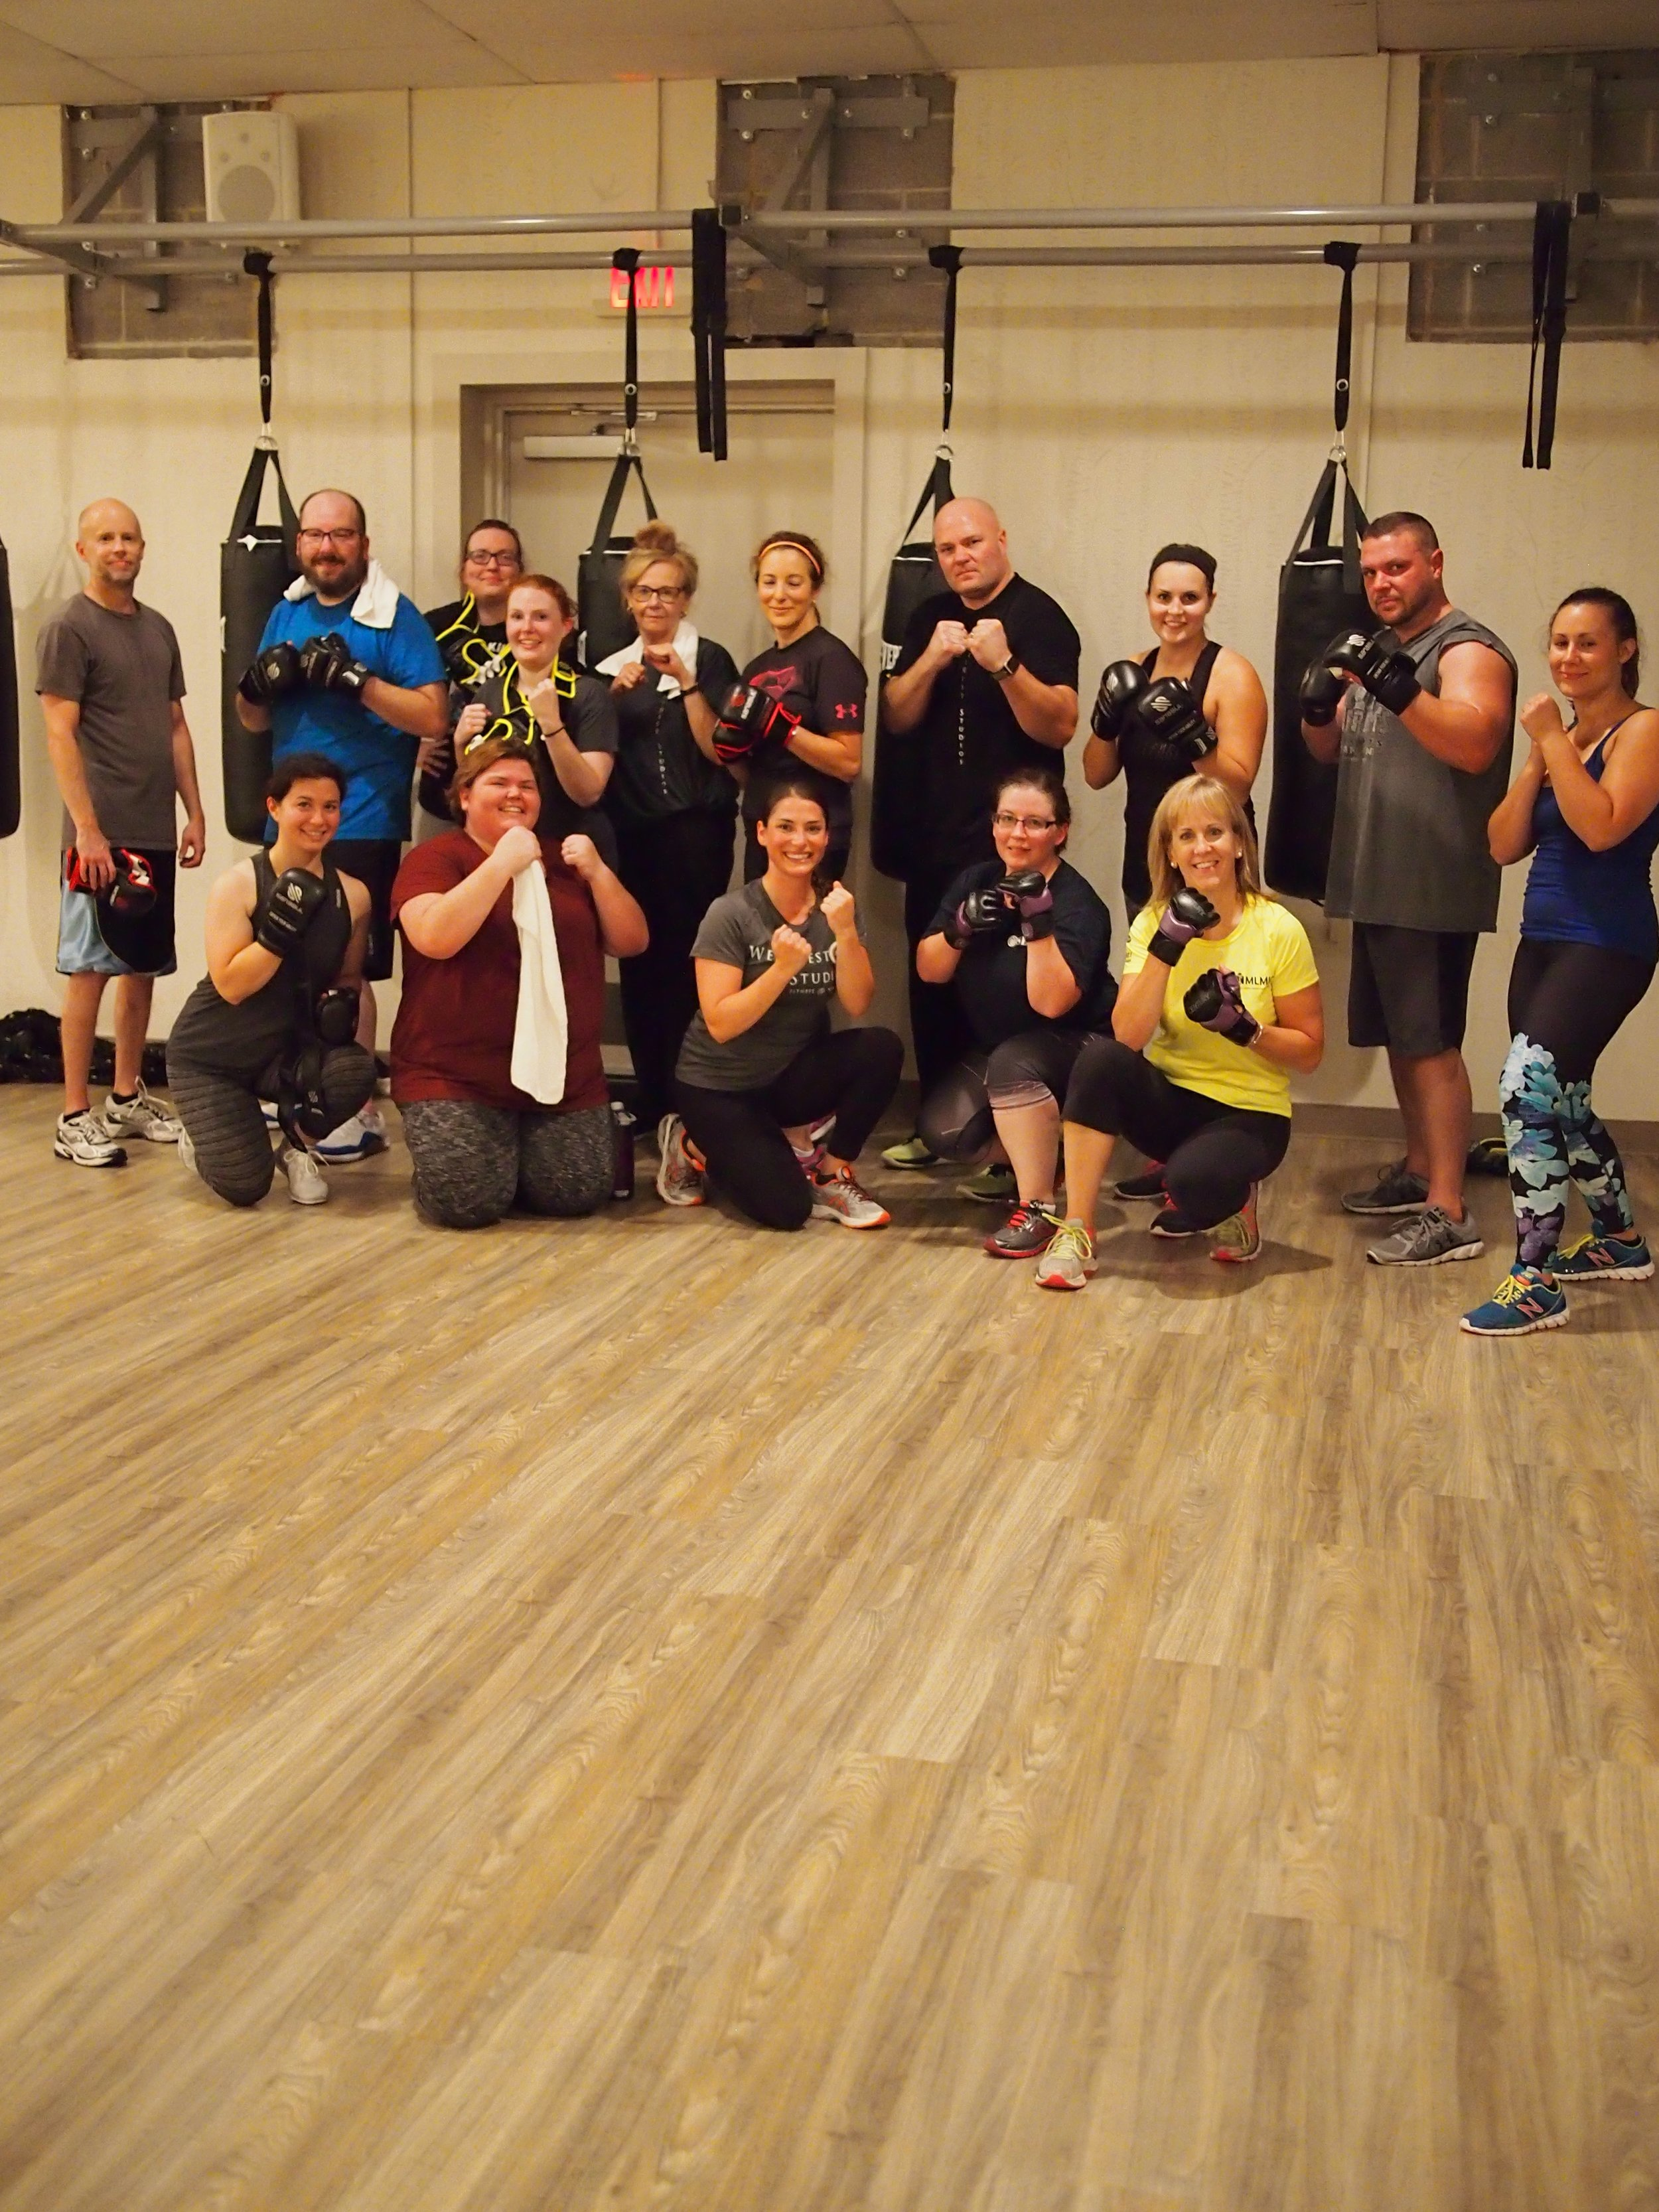 boxing, private boxing lessons, professional boxing, community center, gym near me, group fitness classes, workout near me